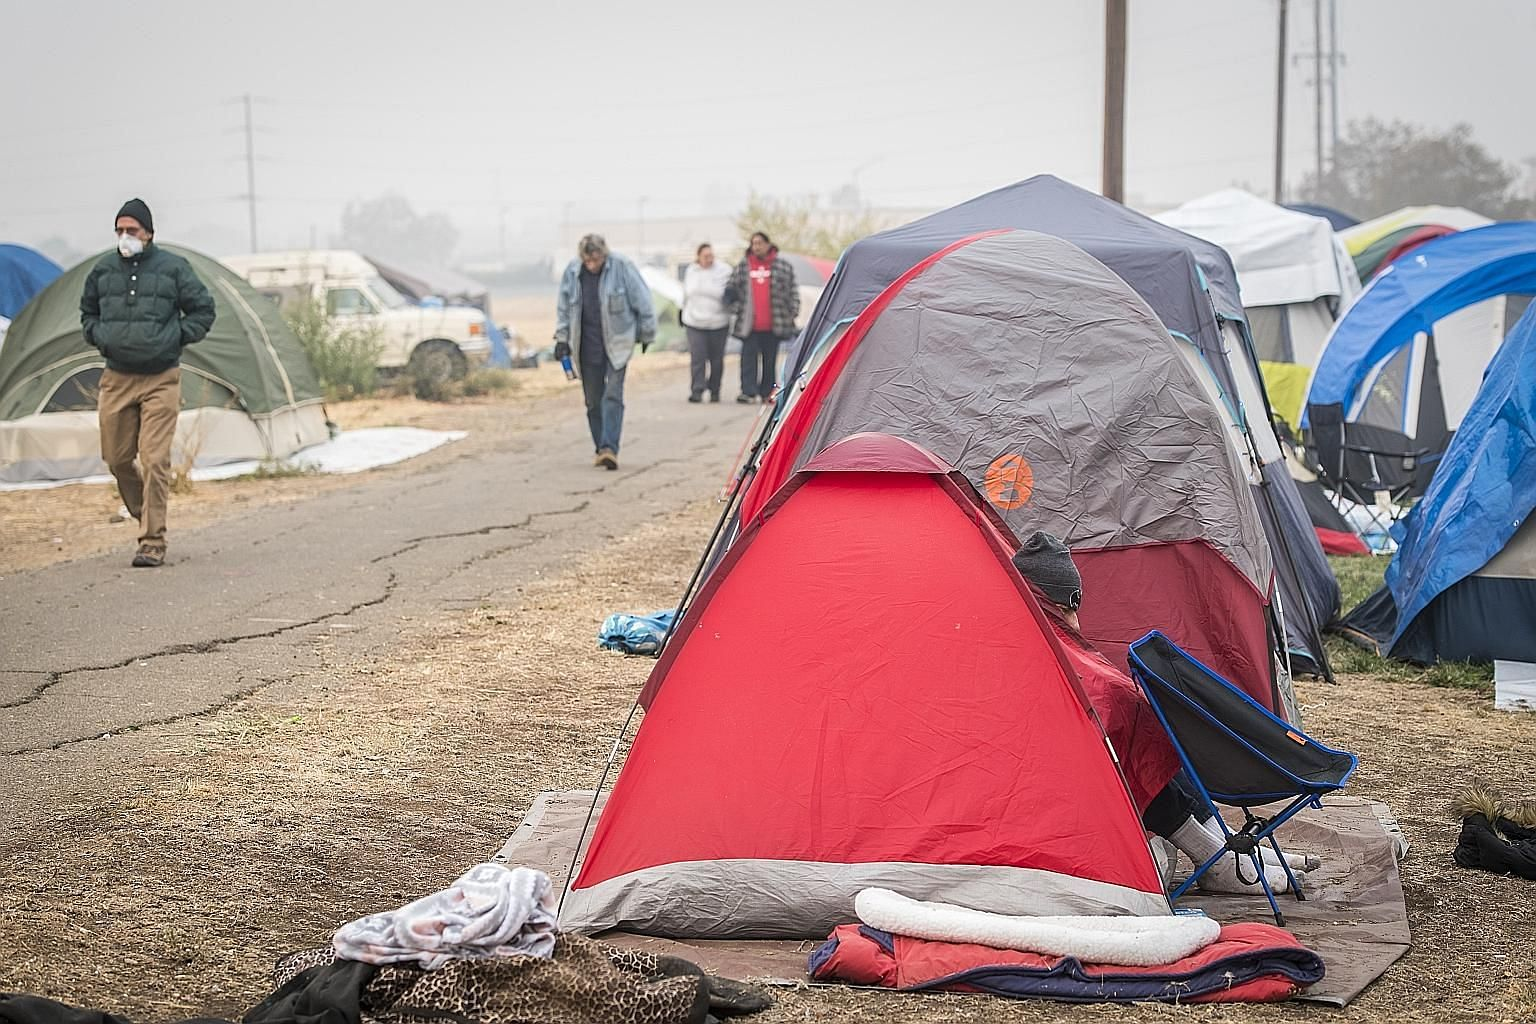 Some of those driven out of their homes by the wildfires in California are living in tents. At least 63 people were killed in and around the town of Paradise by the Camp Fire that erupted a week ago in the Sierra foothills 280km north of San Francisc